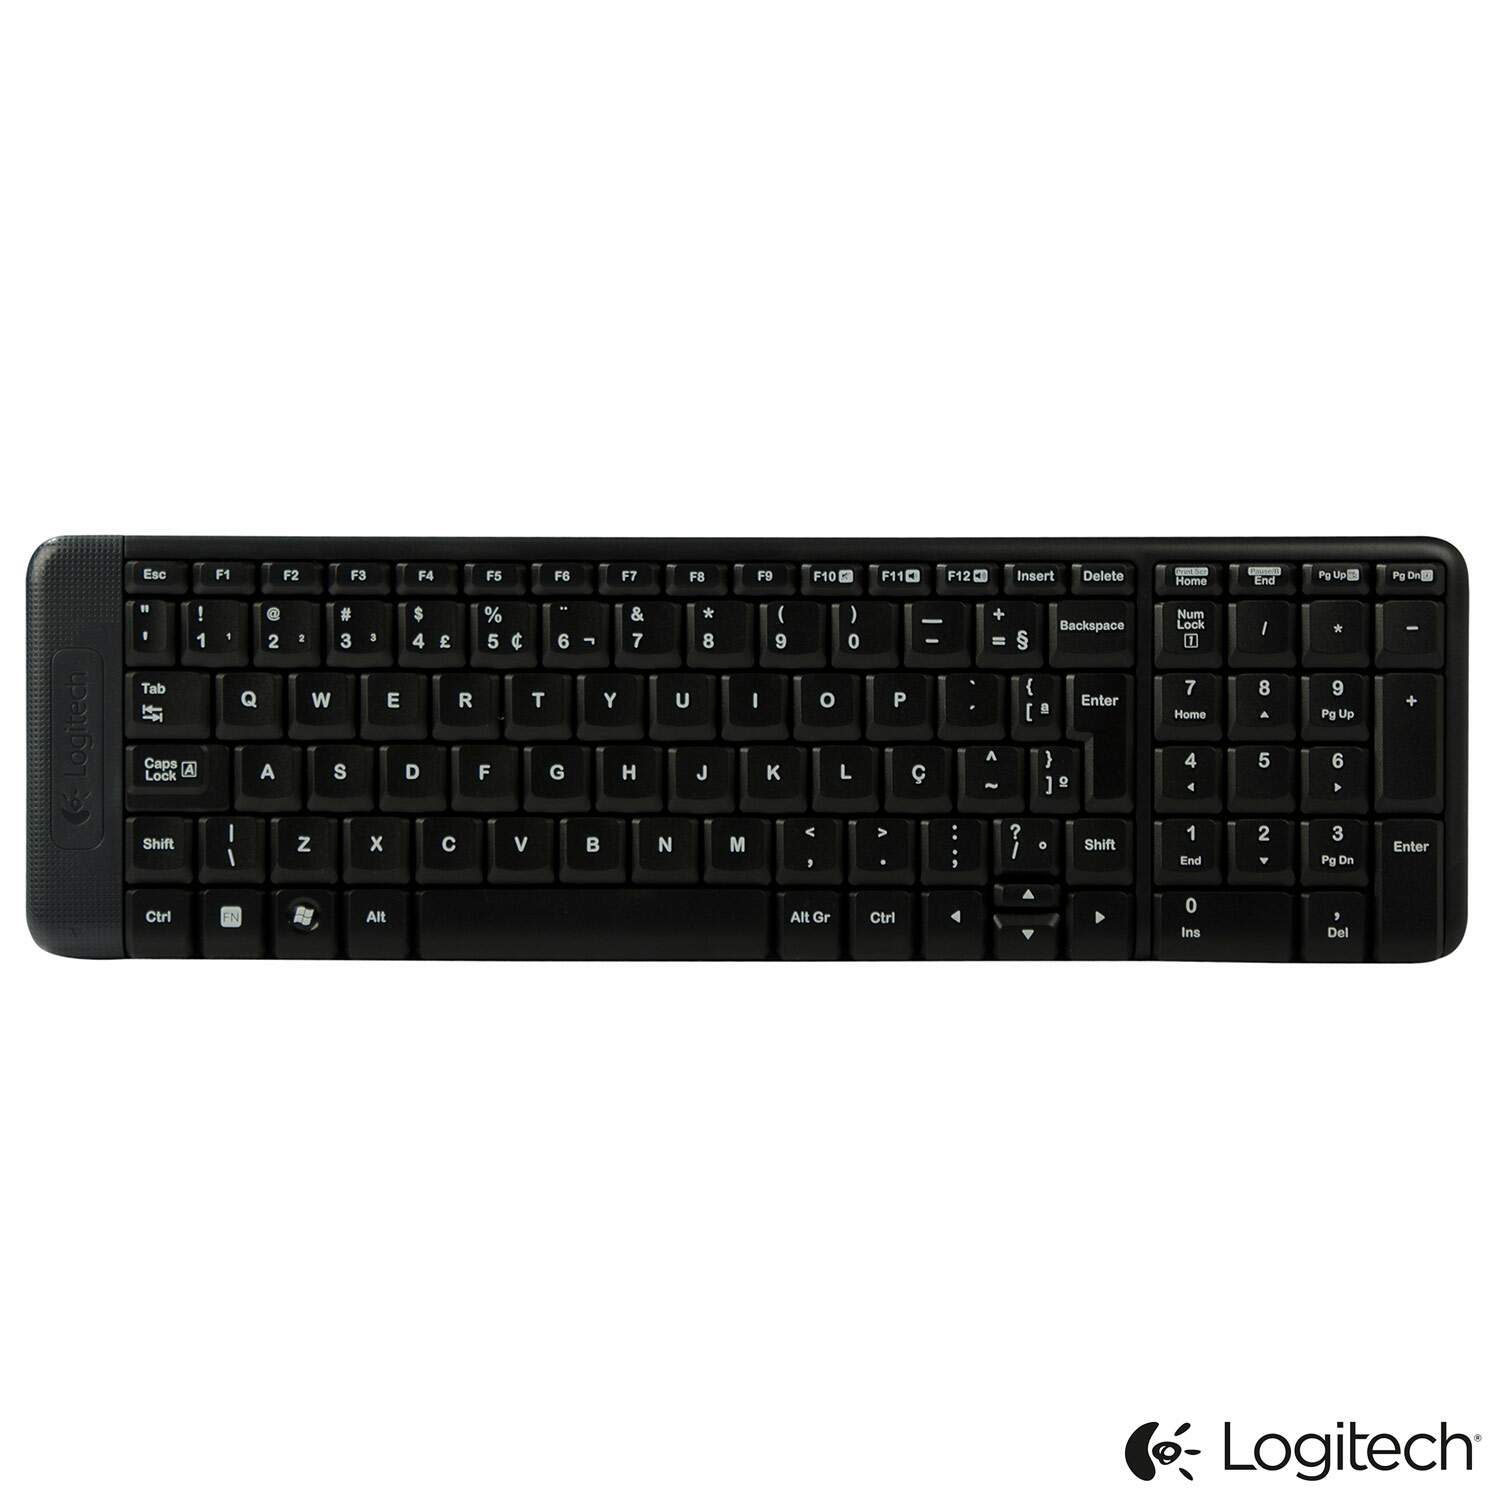 Teclado e Mouse Wireless Logitech Preto - MK220